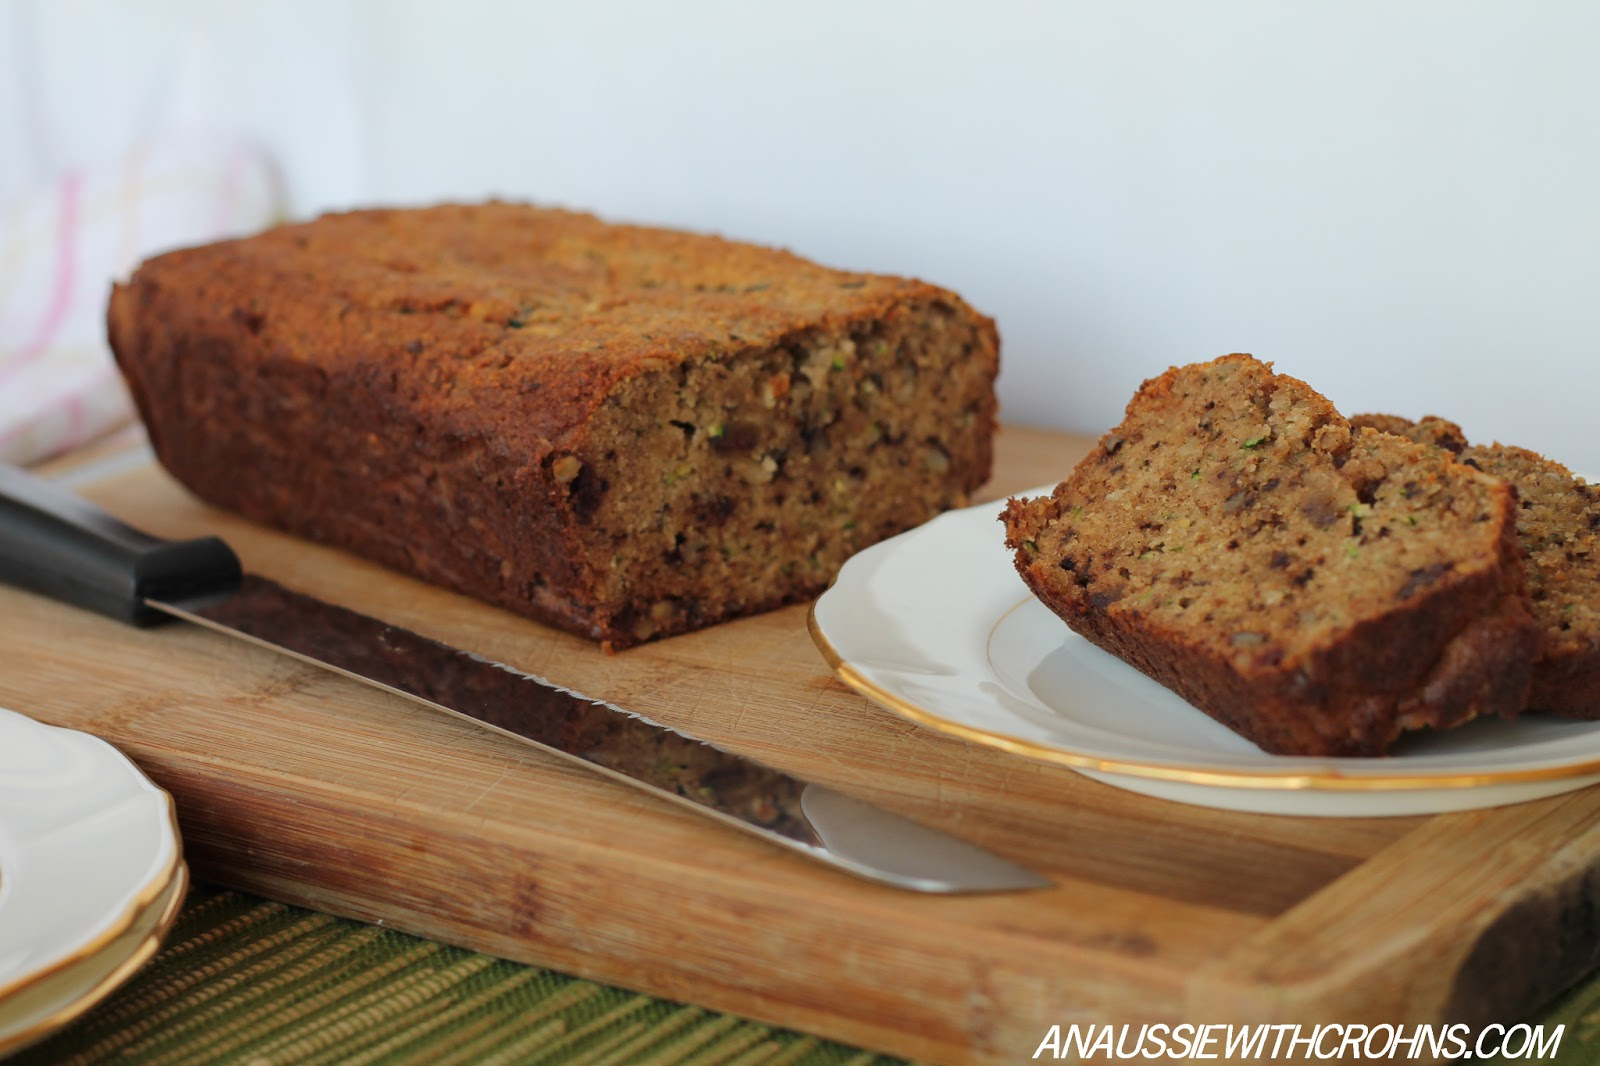 An Aussie With Crohns: Zucchini Bread (Paleo & SCD)